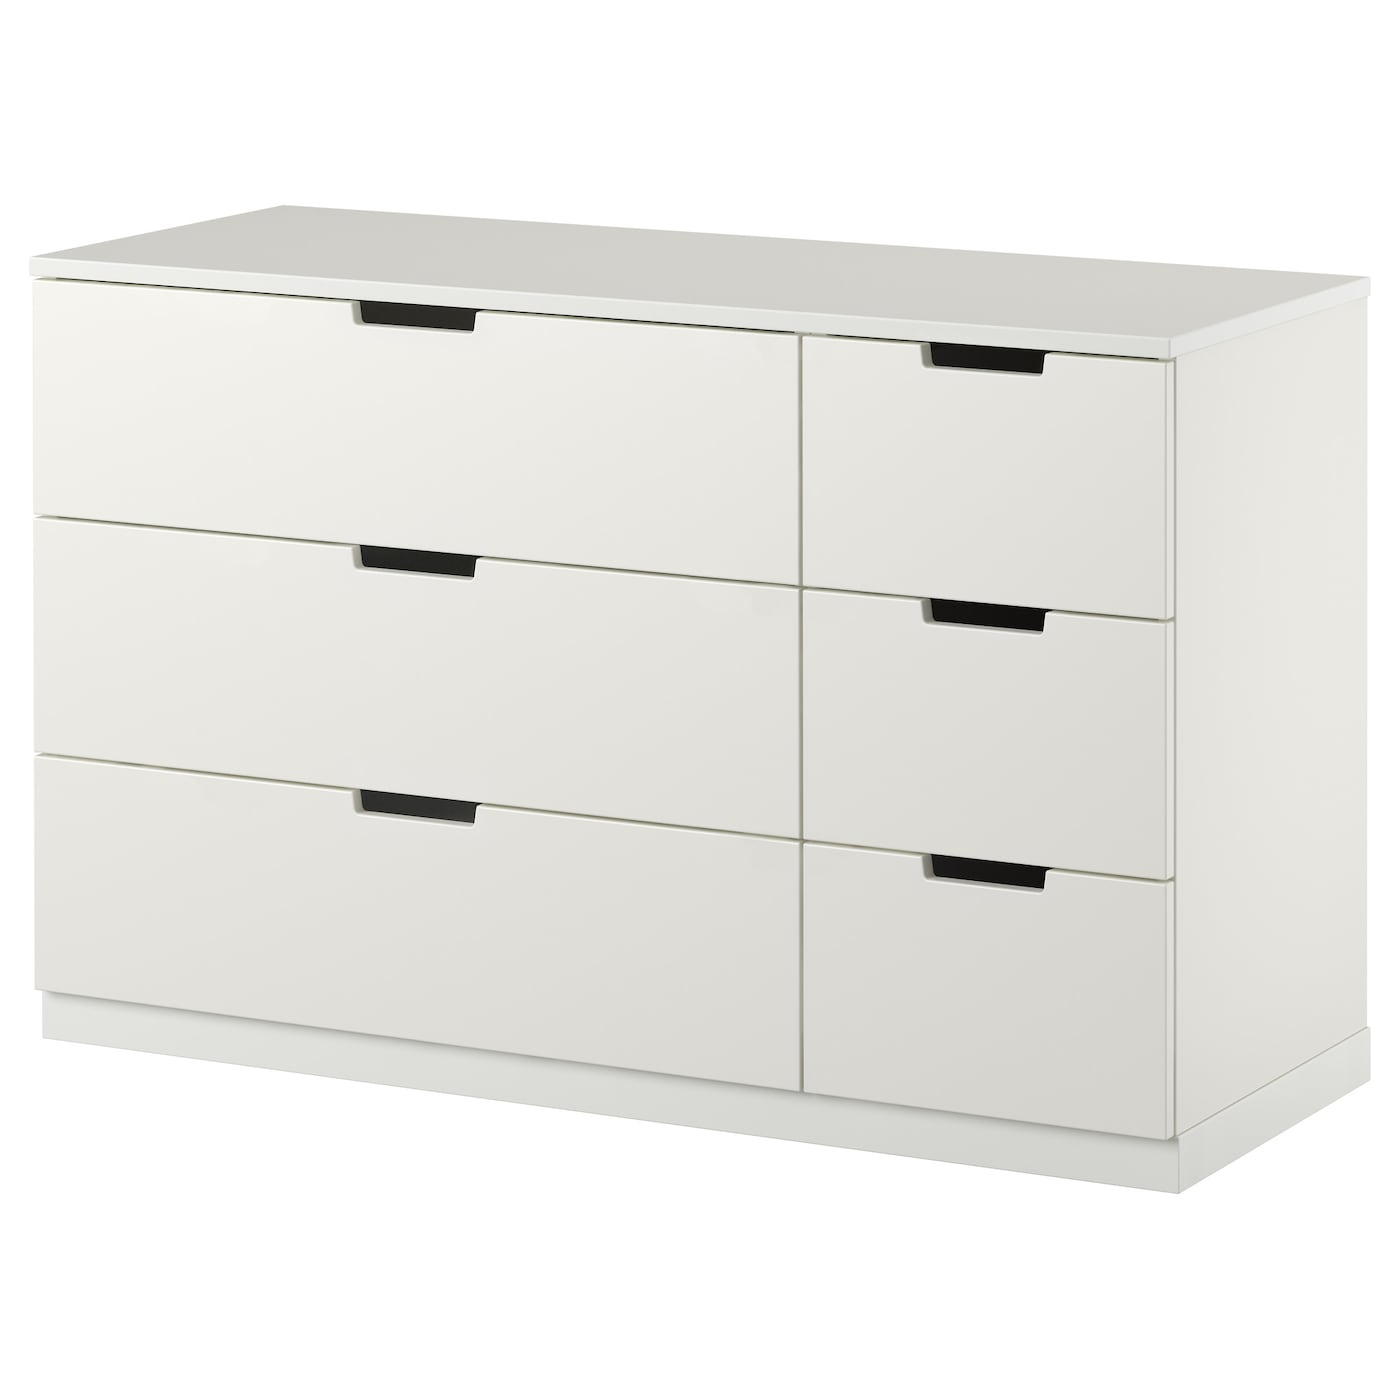 Nordli chest of 6 drawers white 120x75 cm ikea for Kommode 100 x 60